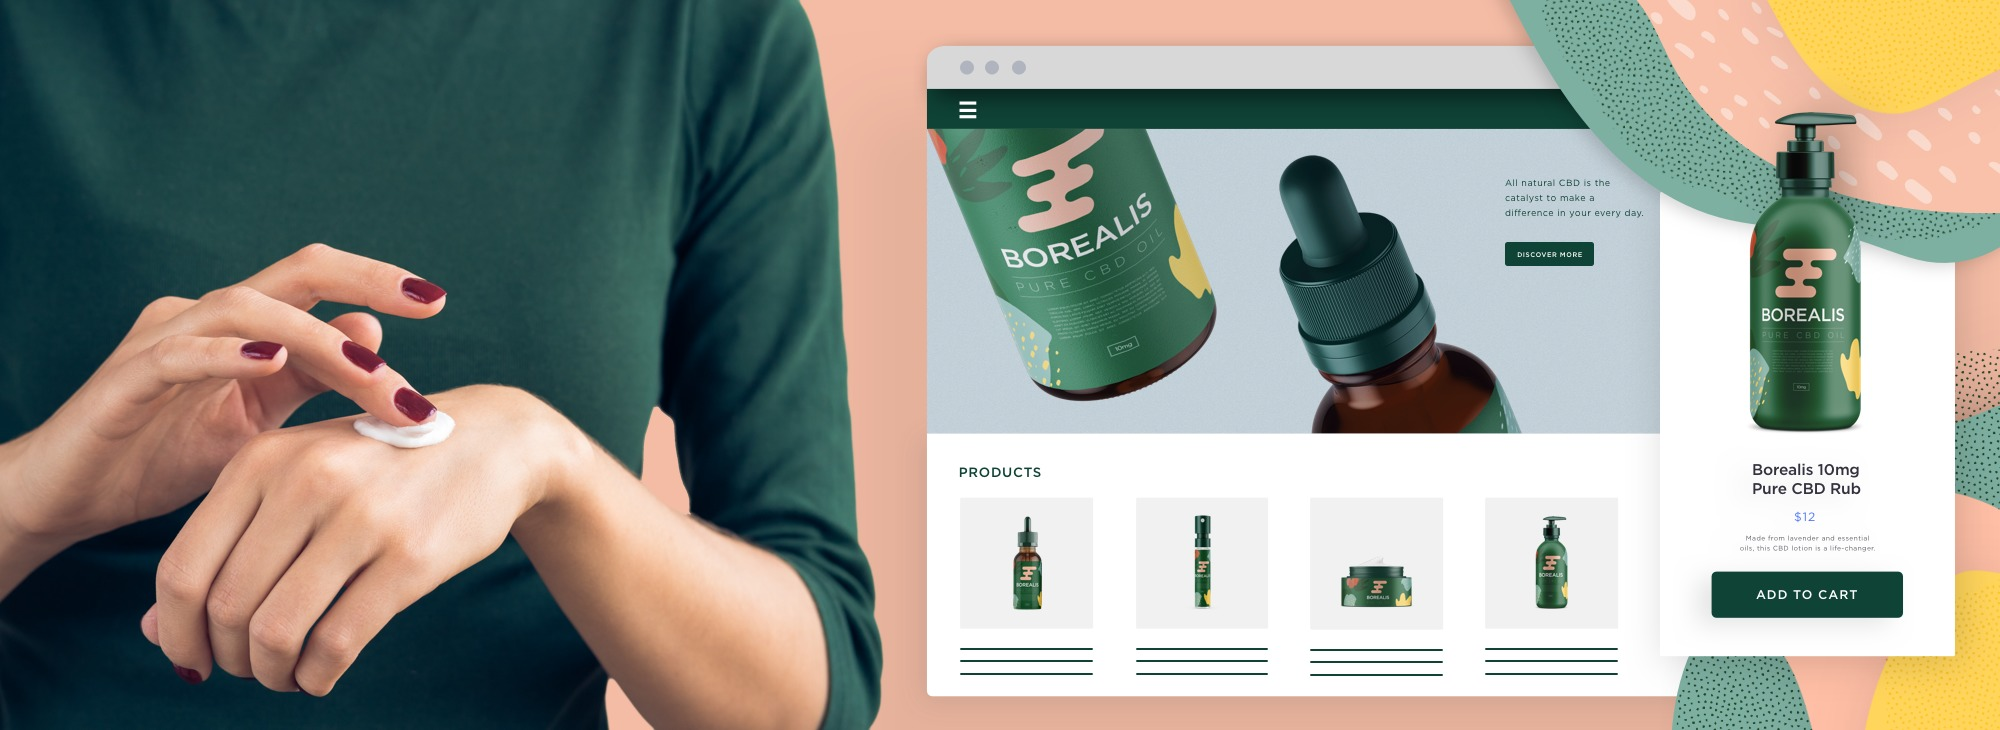 Psoriasis: CBD Can Prove To Be A Blessing In Treating The Condition